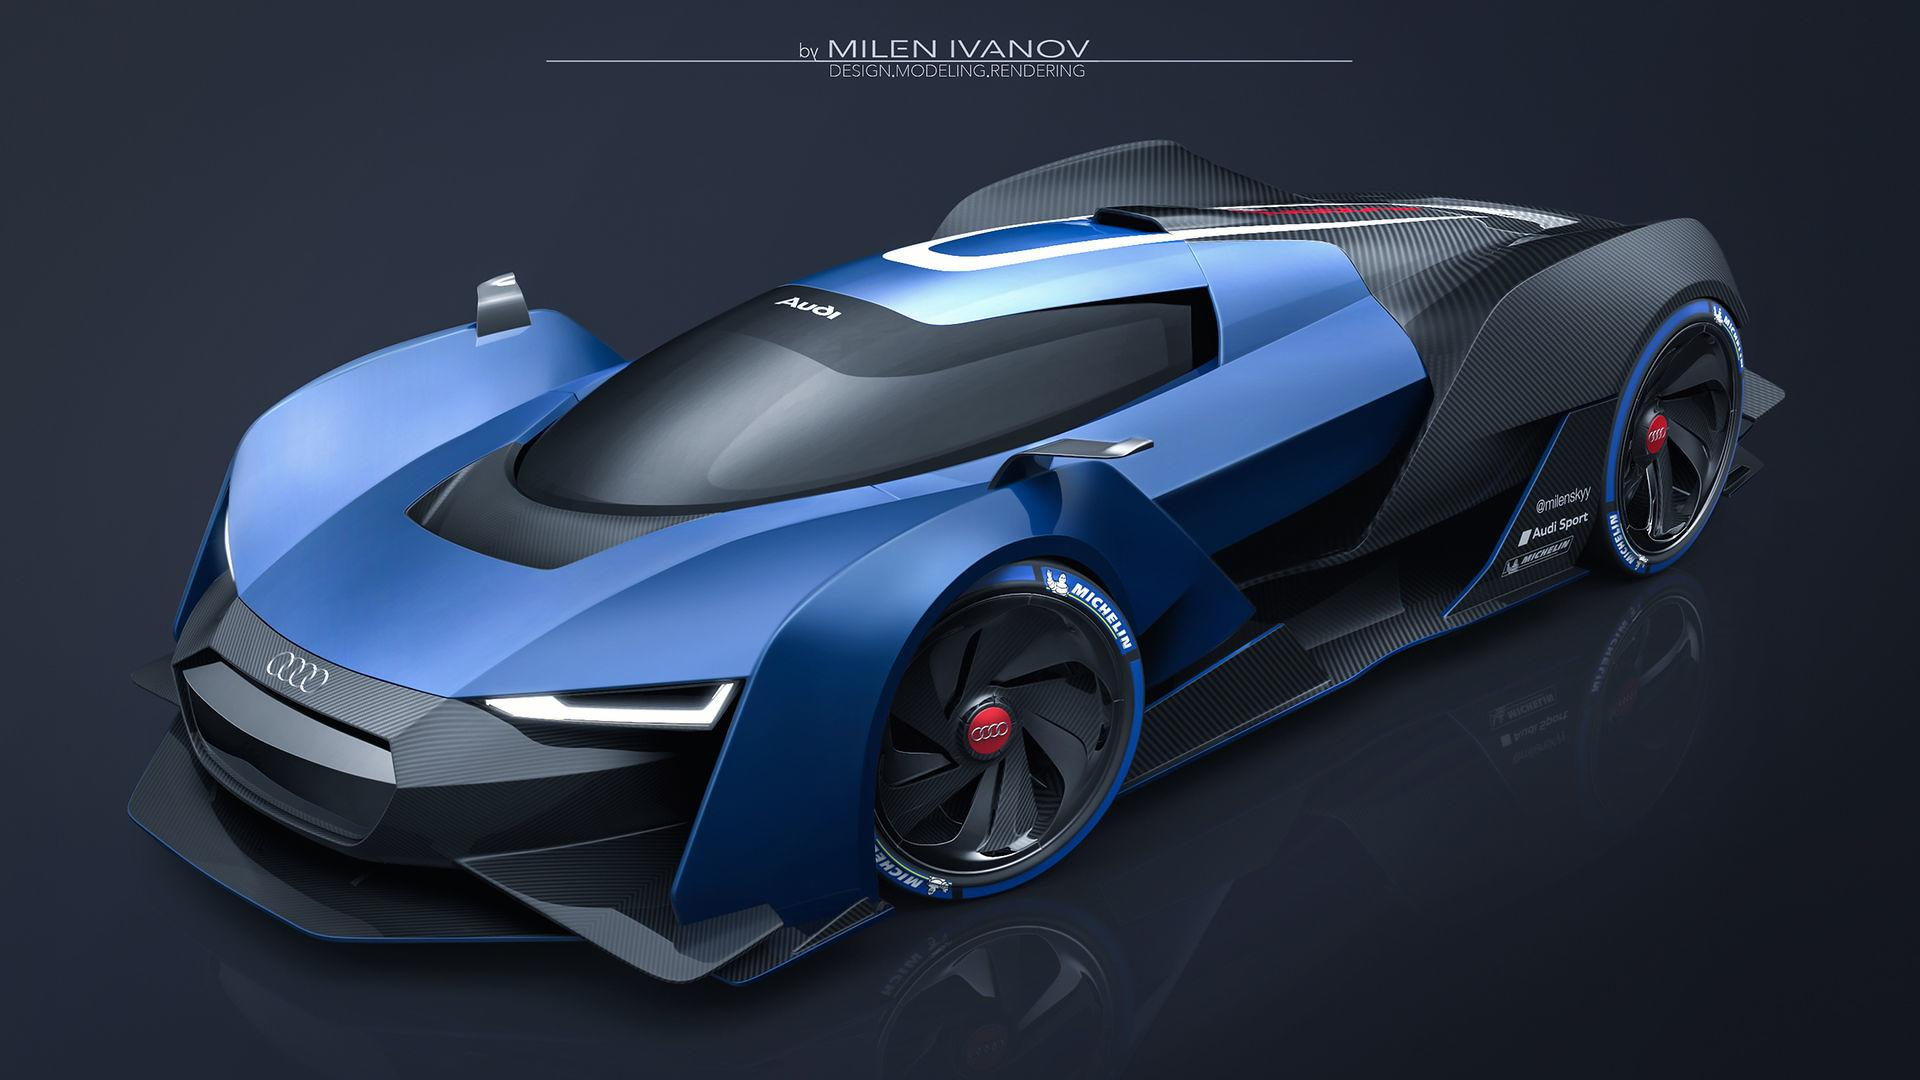 Audi Rs Concept Blends Racing Cues With Supercar Looks